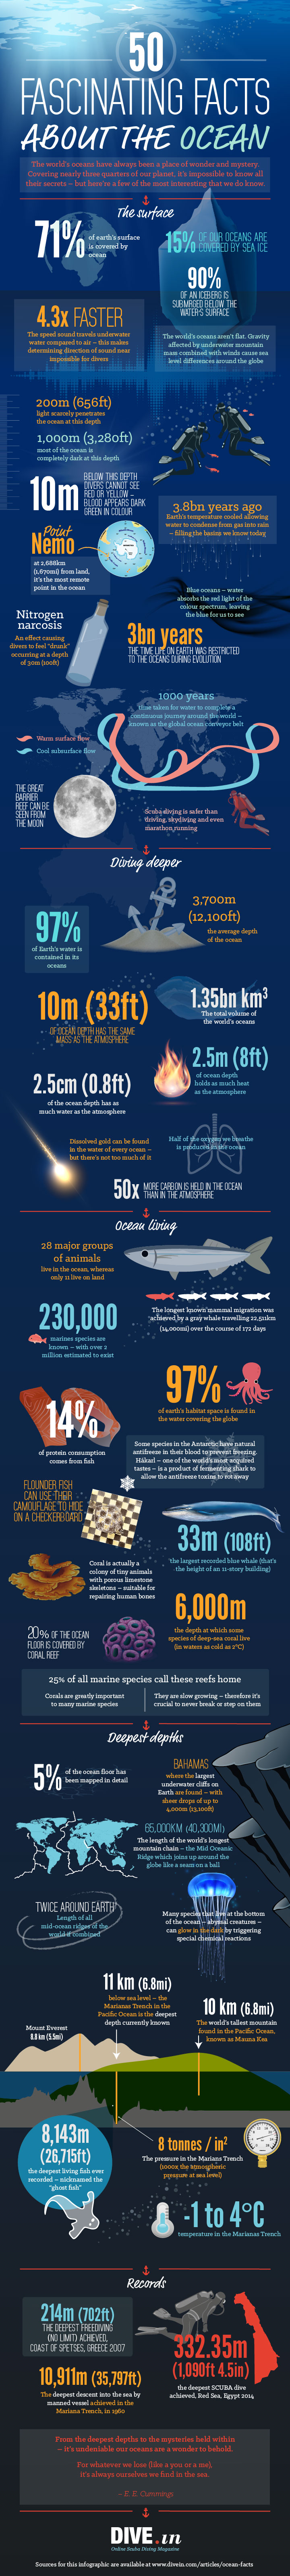 50 fascinating facts about the ocean in one giant infographic 50 Fascinating Facts About Our Oceans [Infographic]